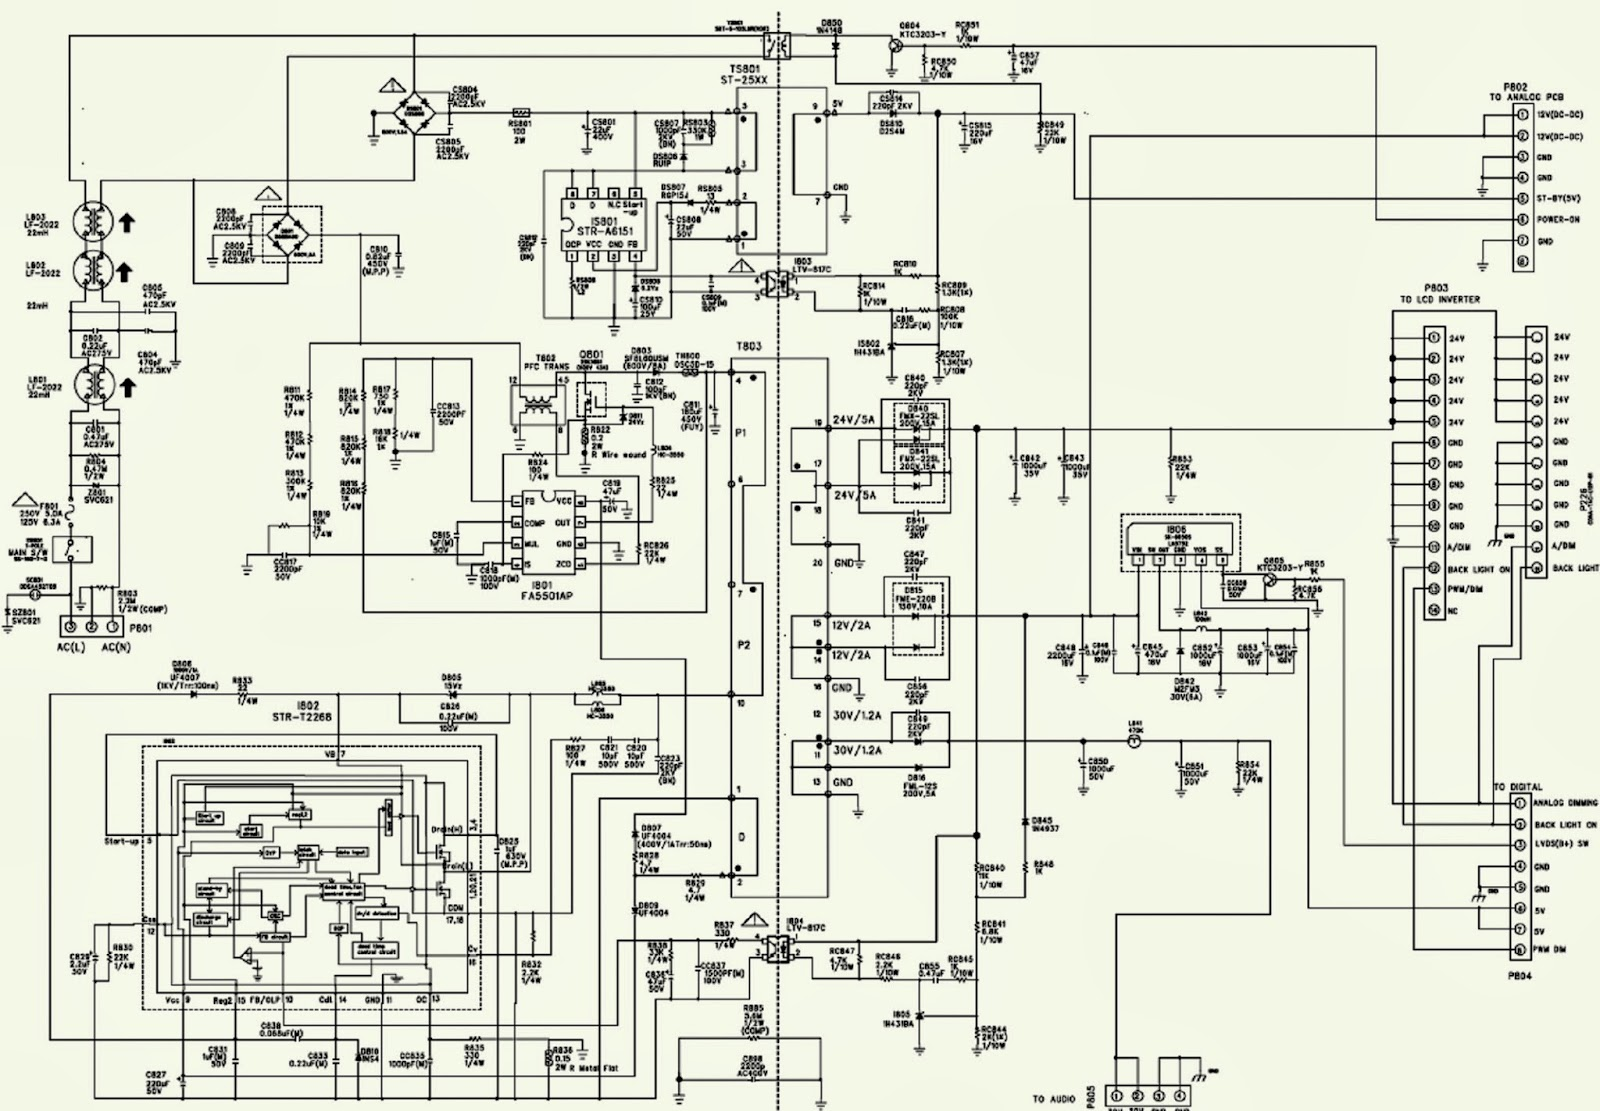 lg rz37lz55 power supply schematic circuit diagram faults lg rz37lz55 power supply schematic circuit diagram faults str t2268